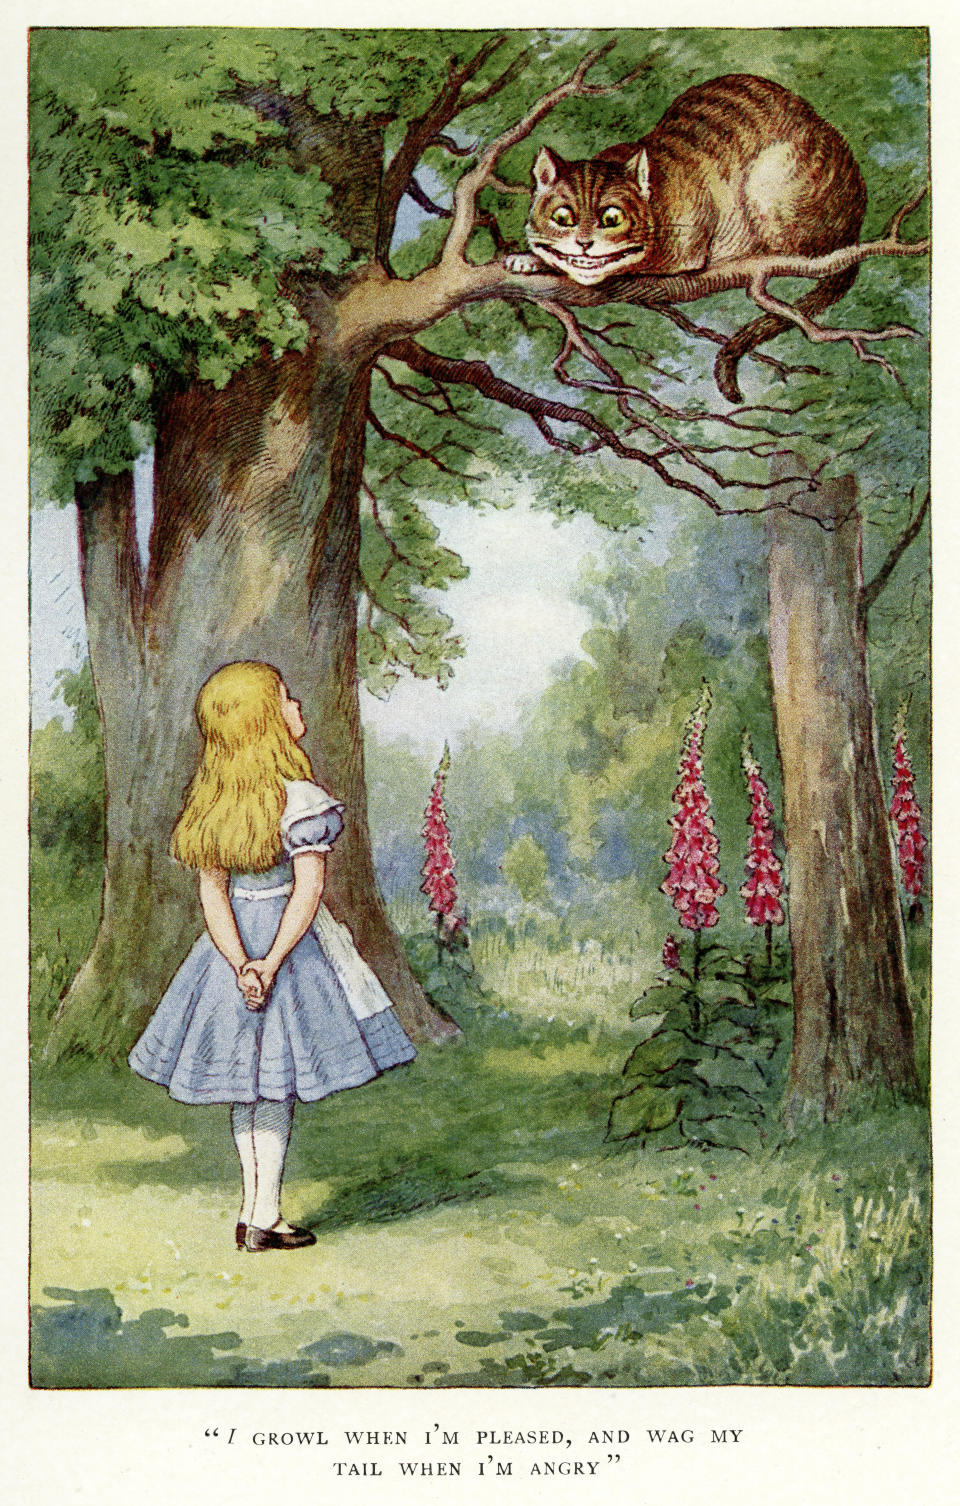 Vintage colour lithograph of Alice and the Cheshire Cat, from Alice's Adventures in Wonderland by Lewis Carroll, John Tenniel.